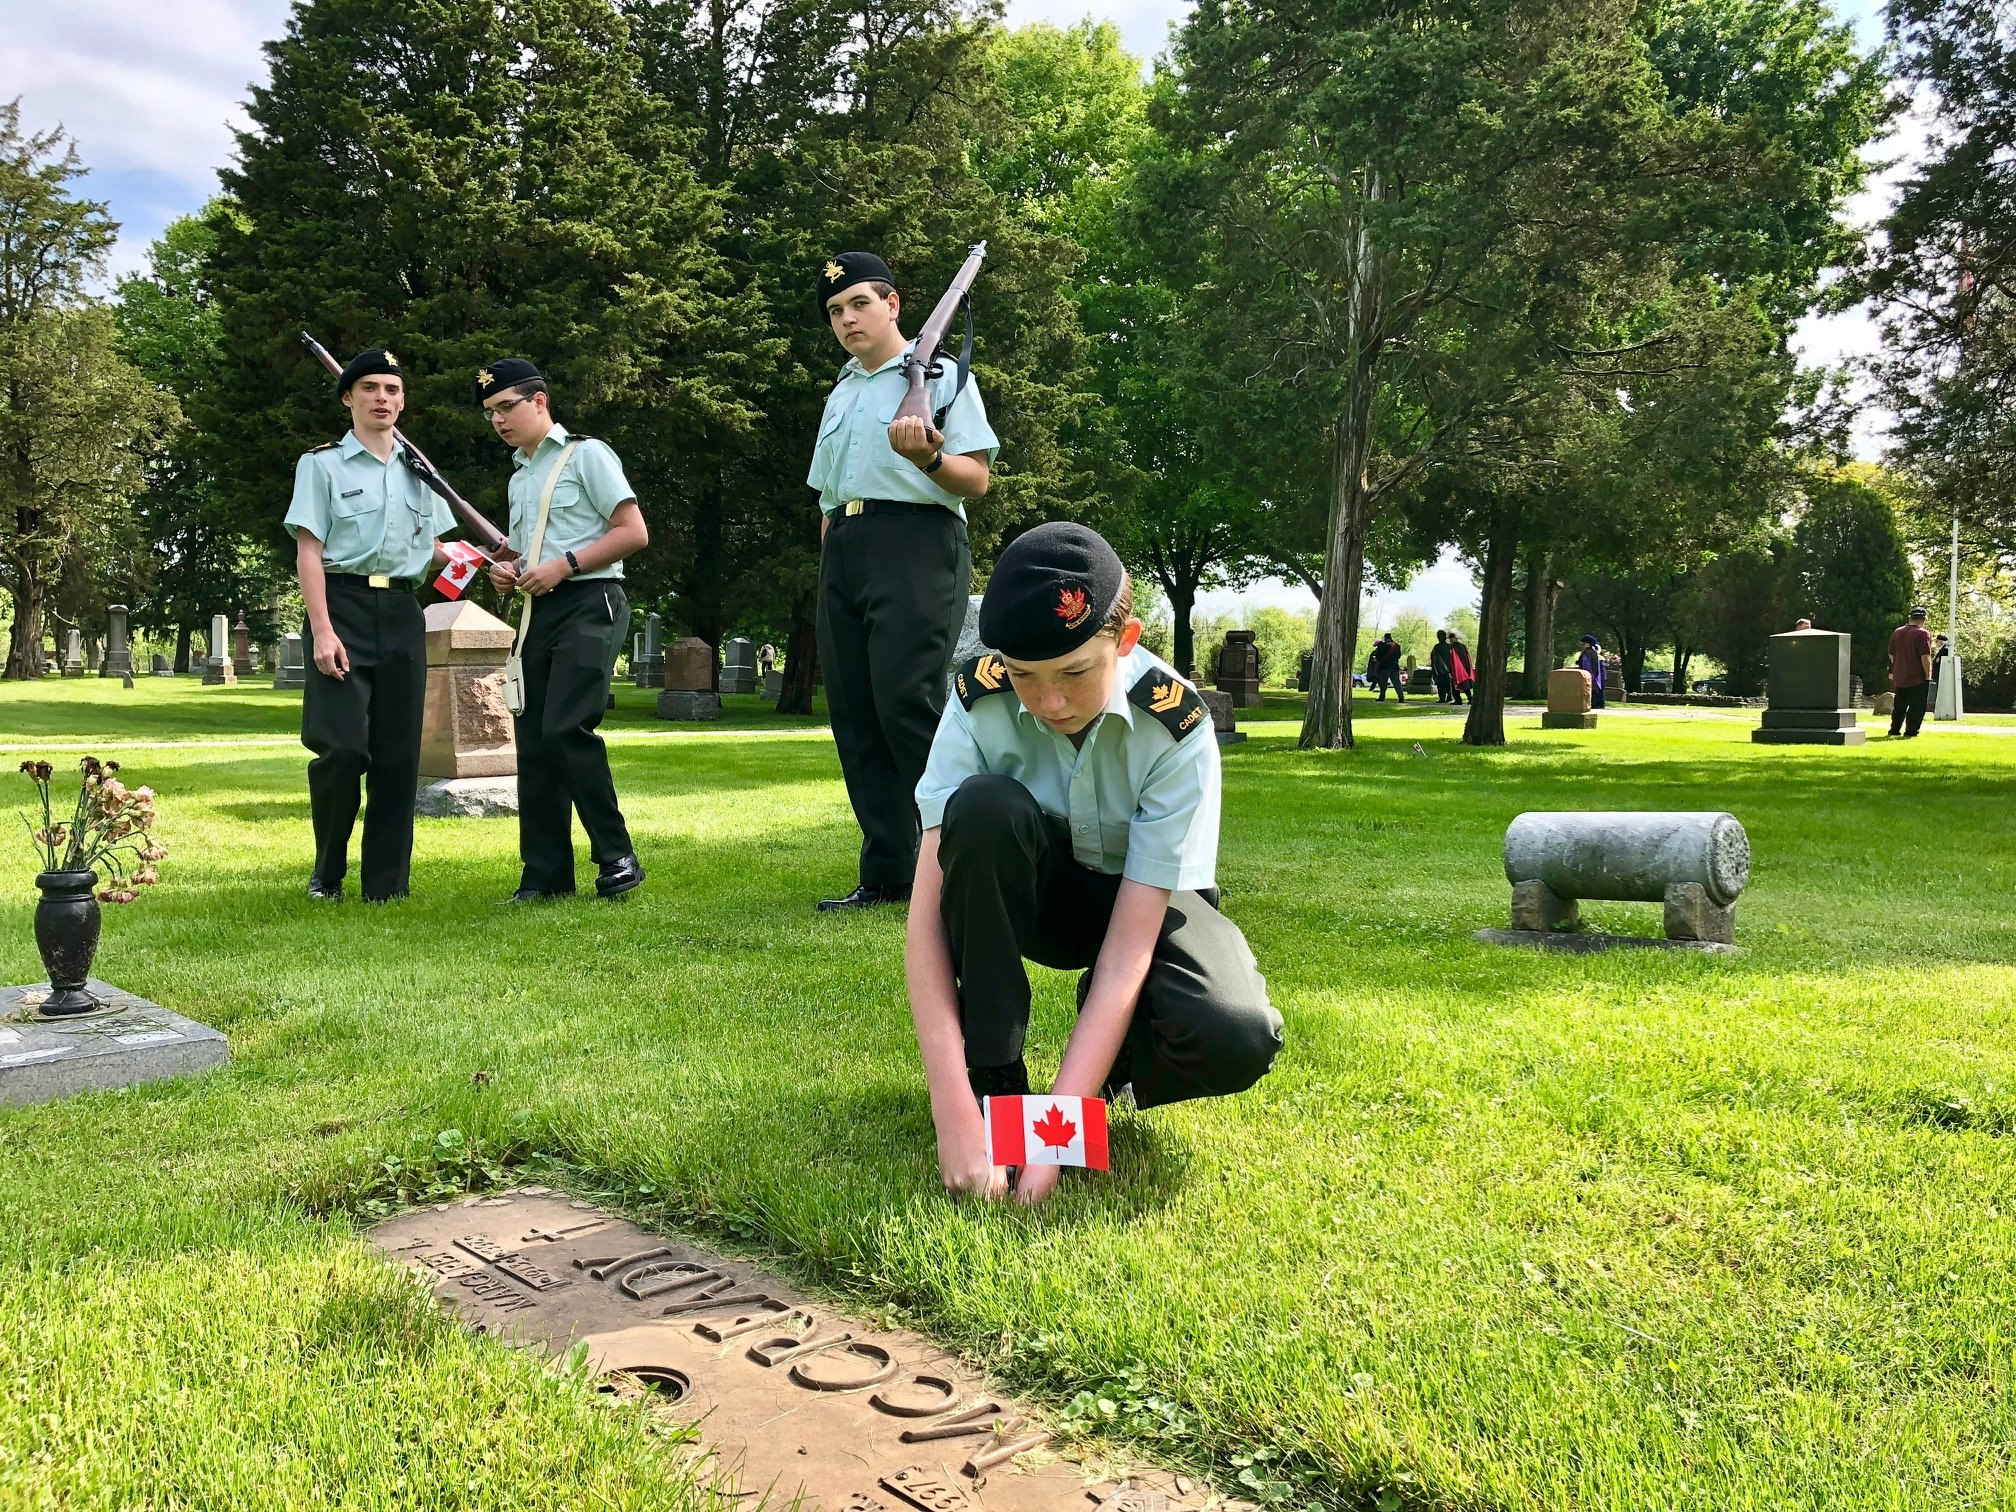 A cadet plants a Canadian flag while three cadets holding rifles look on.